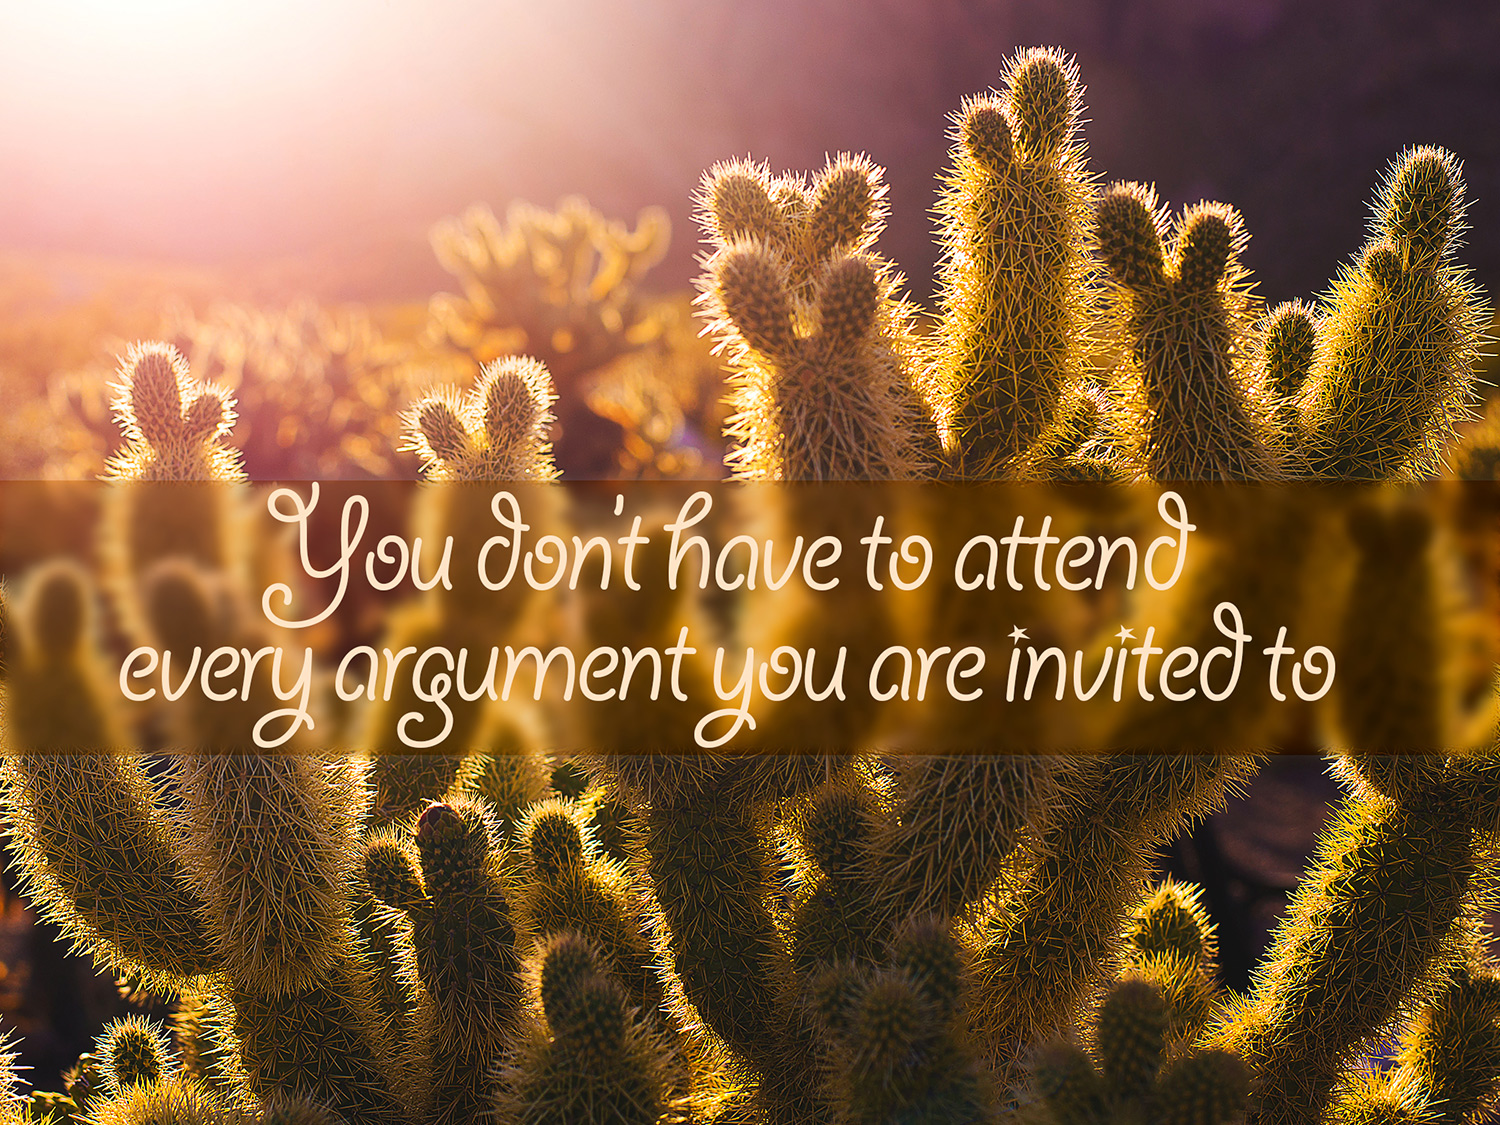 daily inspirational quote image: cacti in the early morning